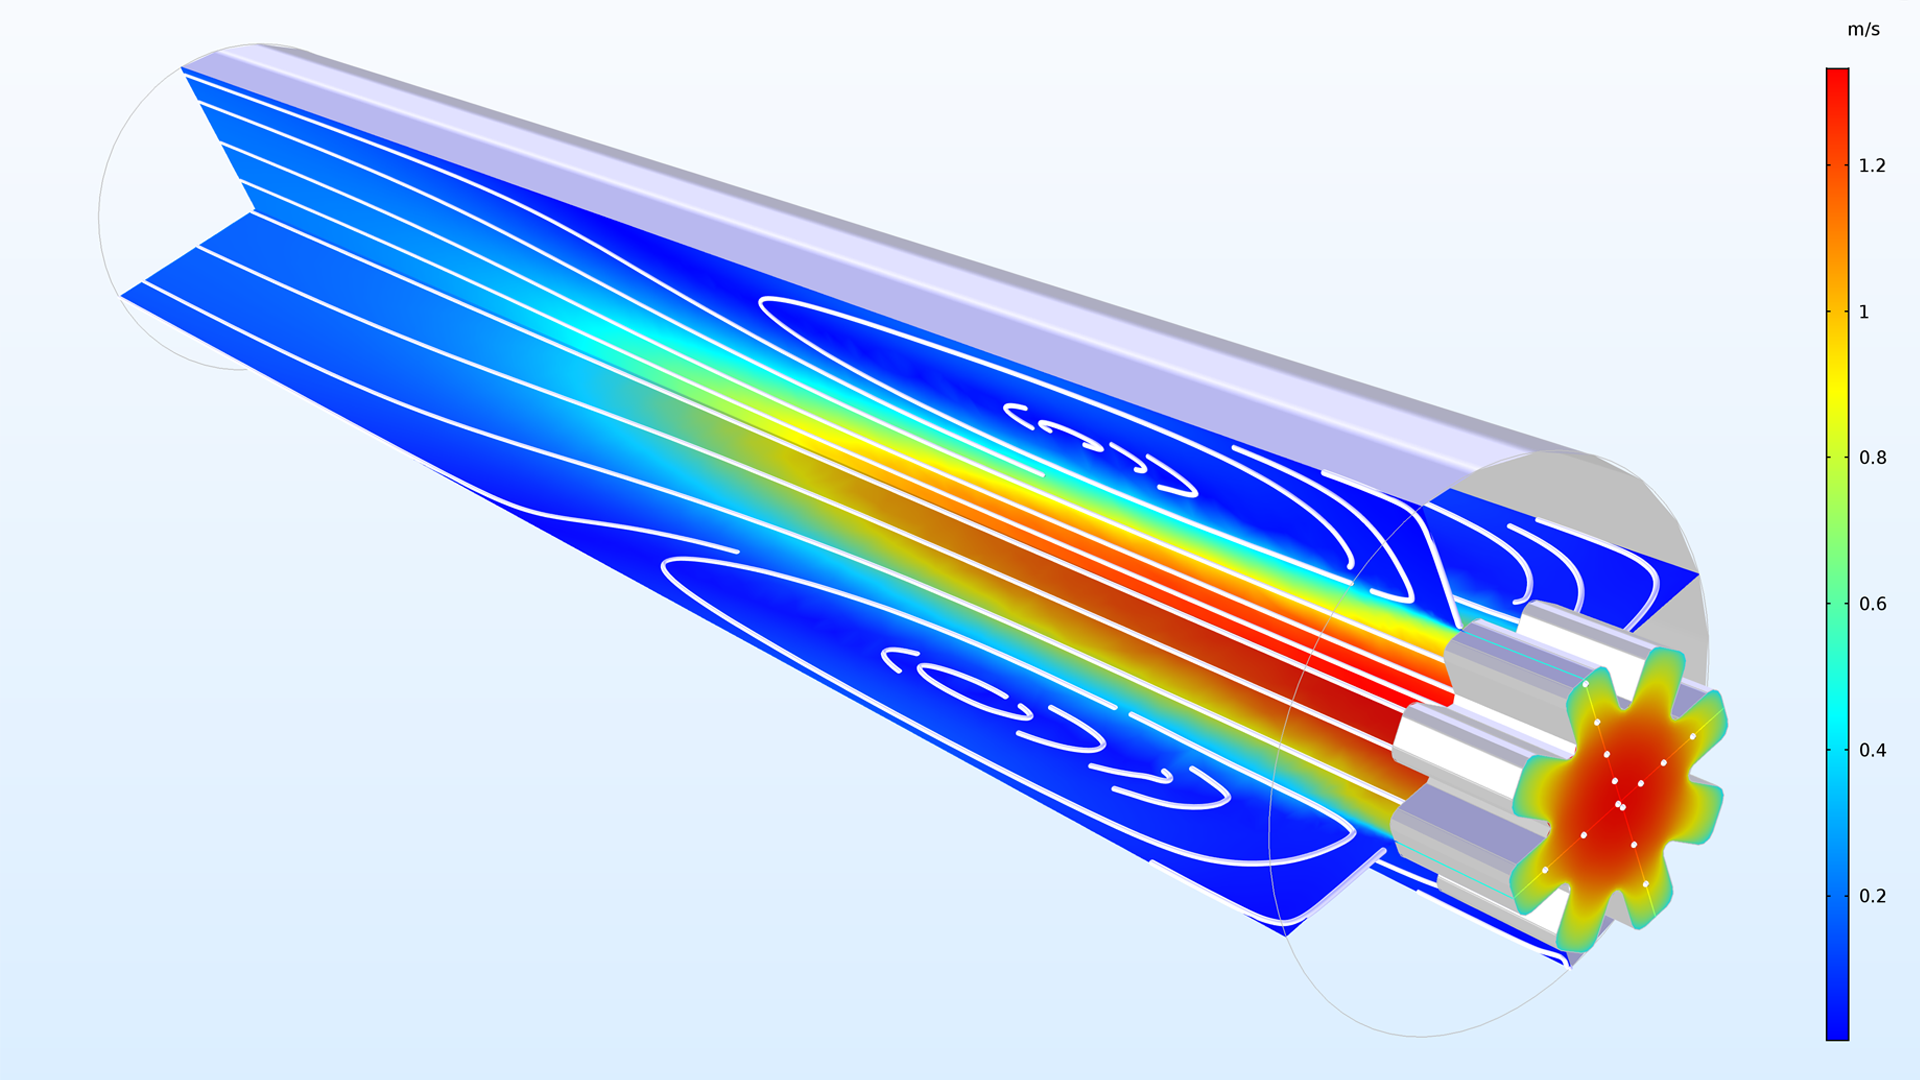 Specify upstream conditions on Inlet (CFD) and Inflow (Heat Transfer) boundaries to model more accurate turbulence properties.